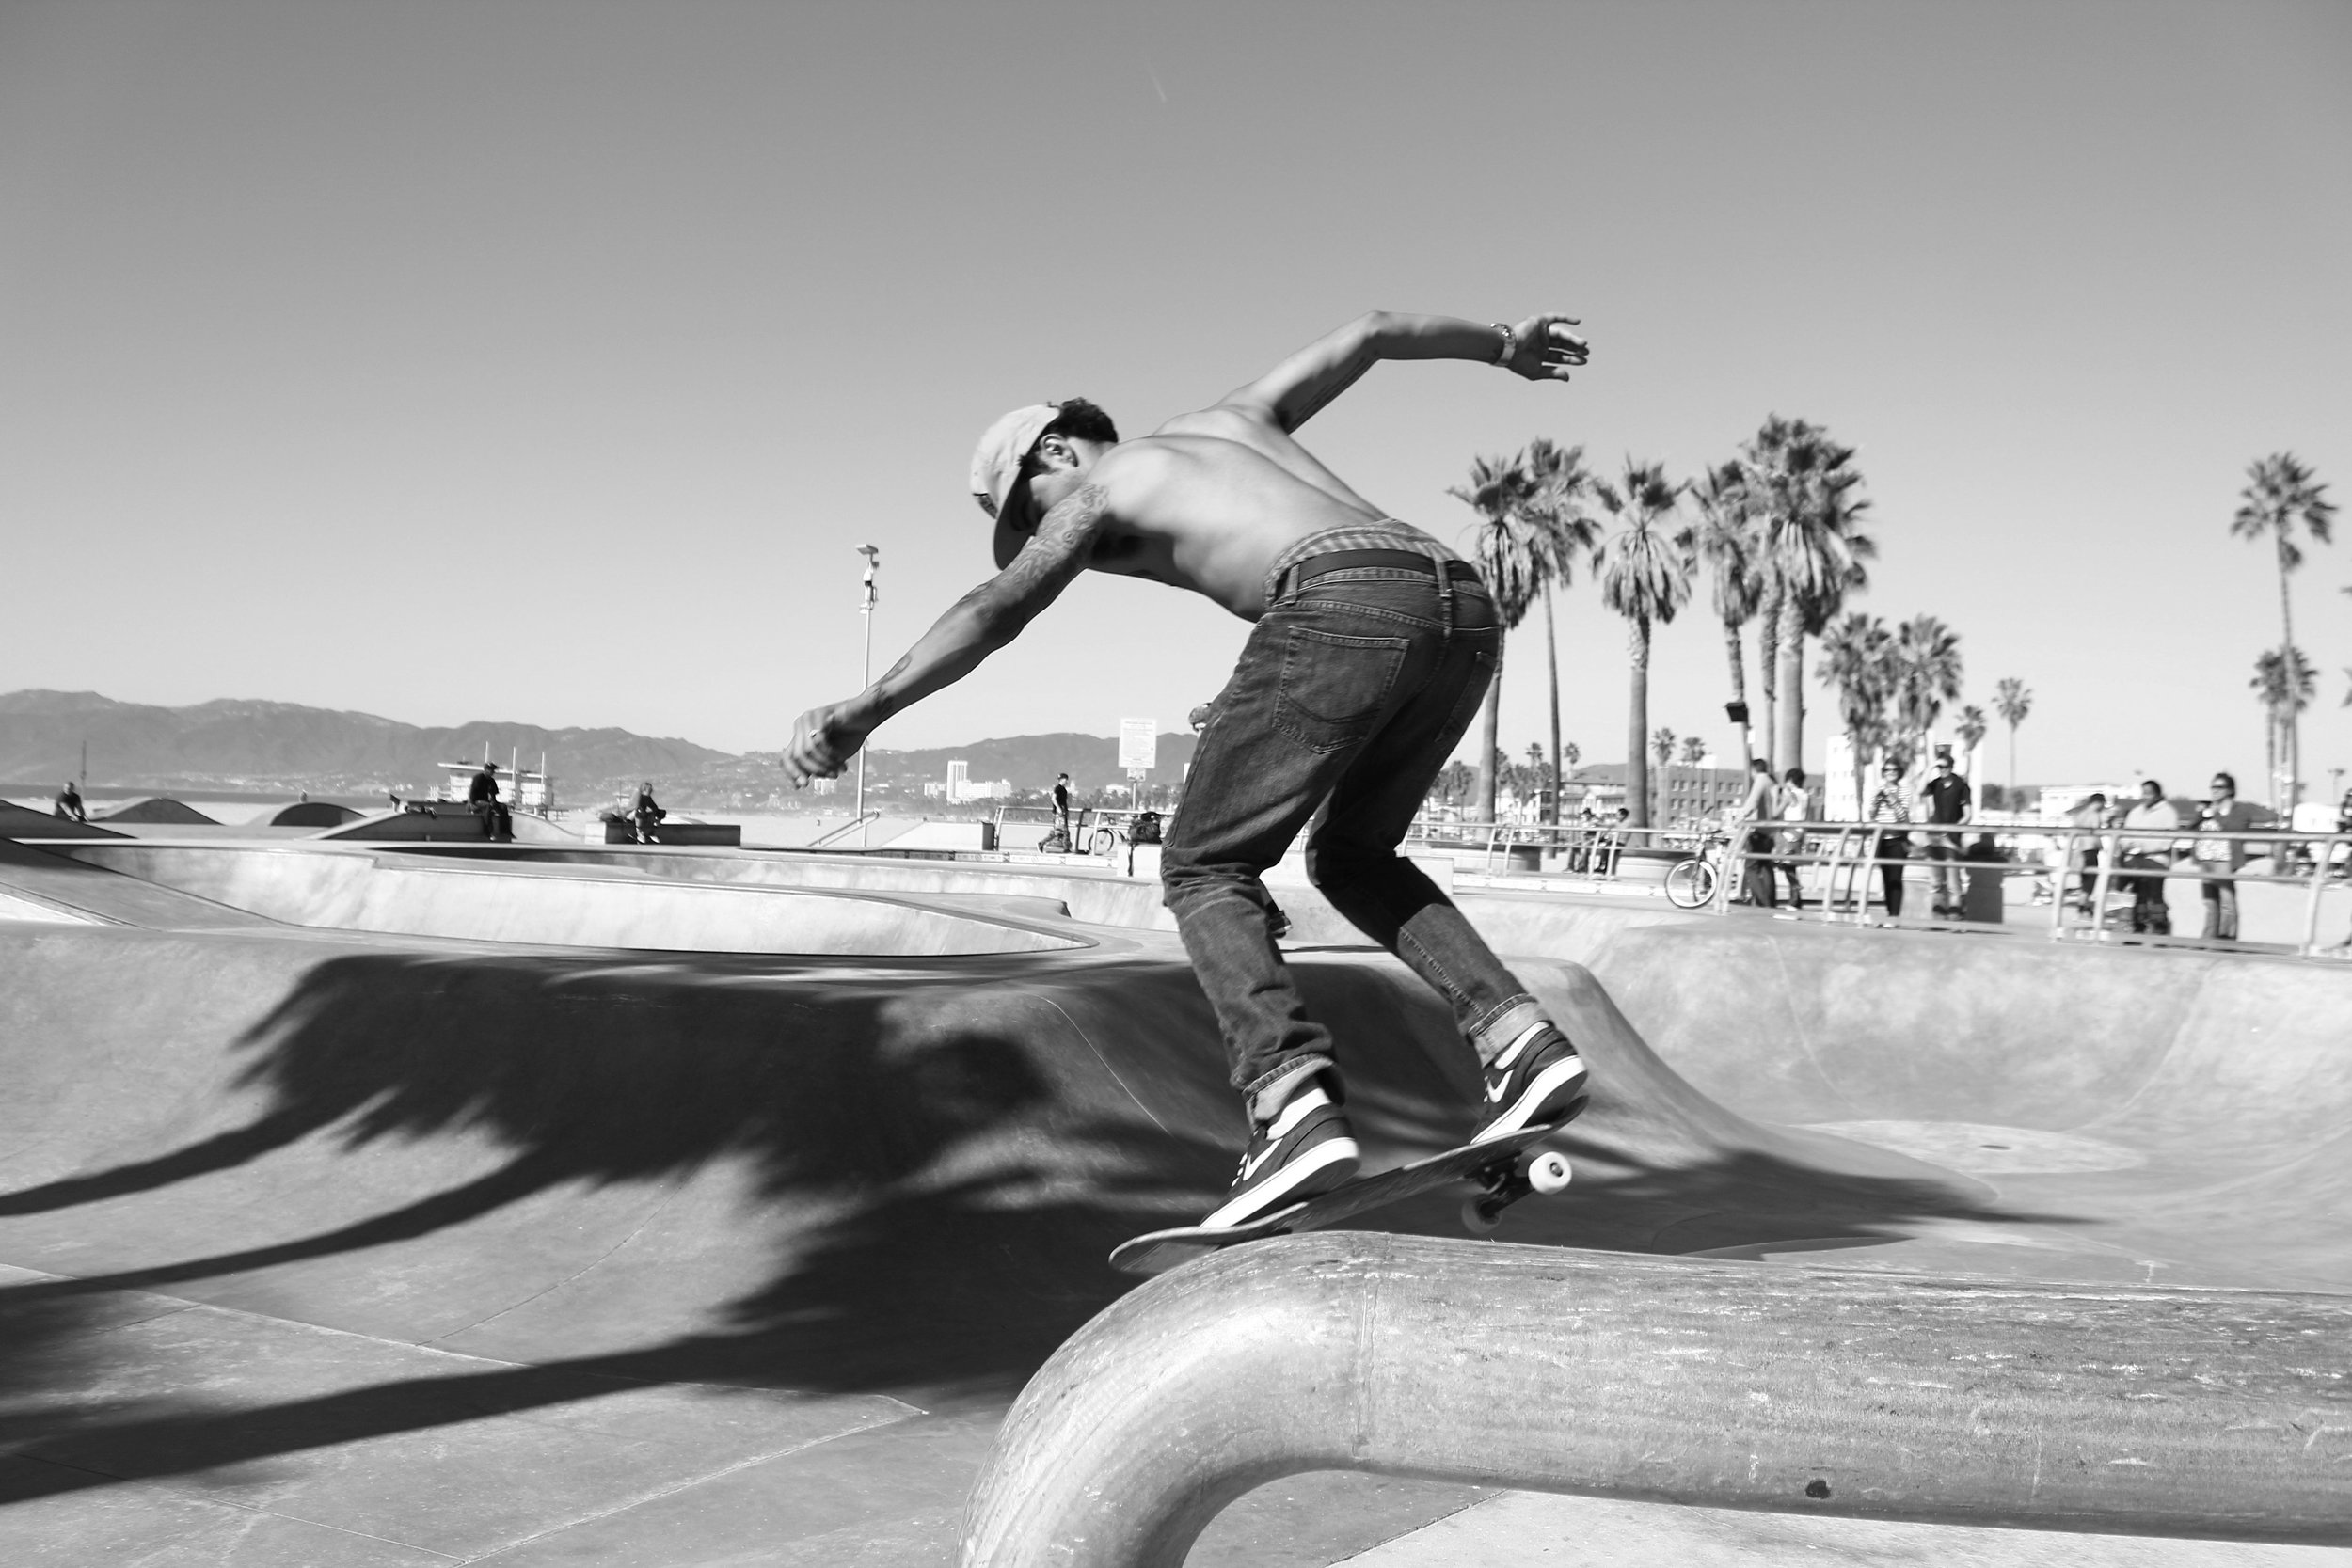 Skater black and white.jpg